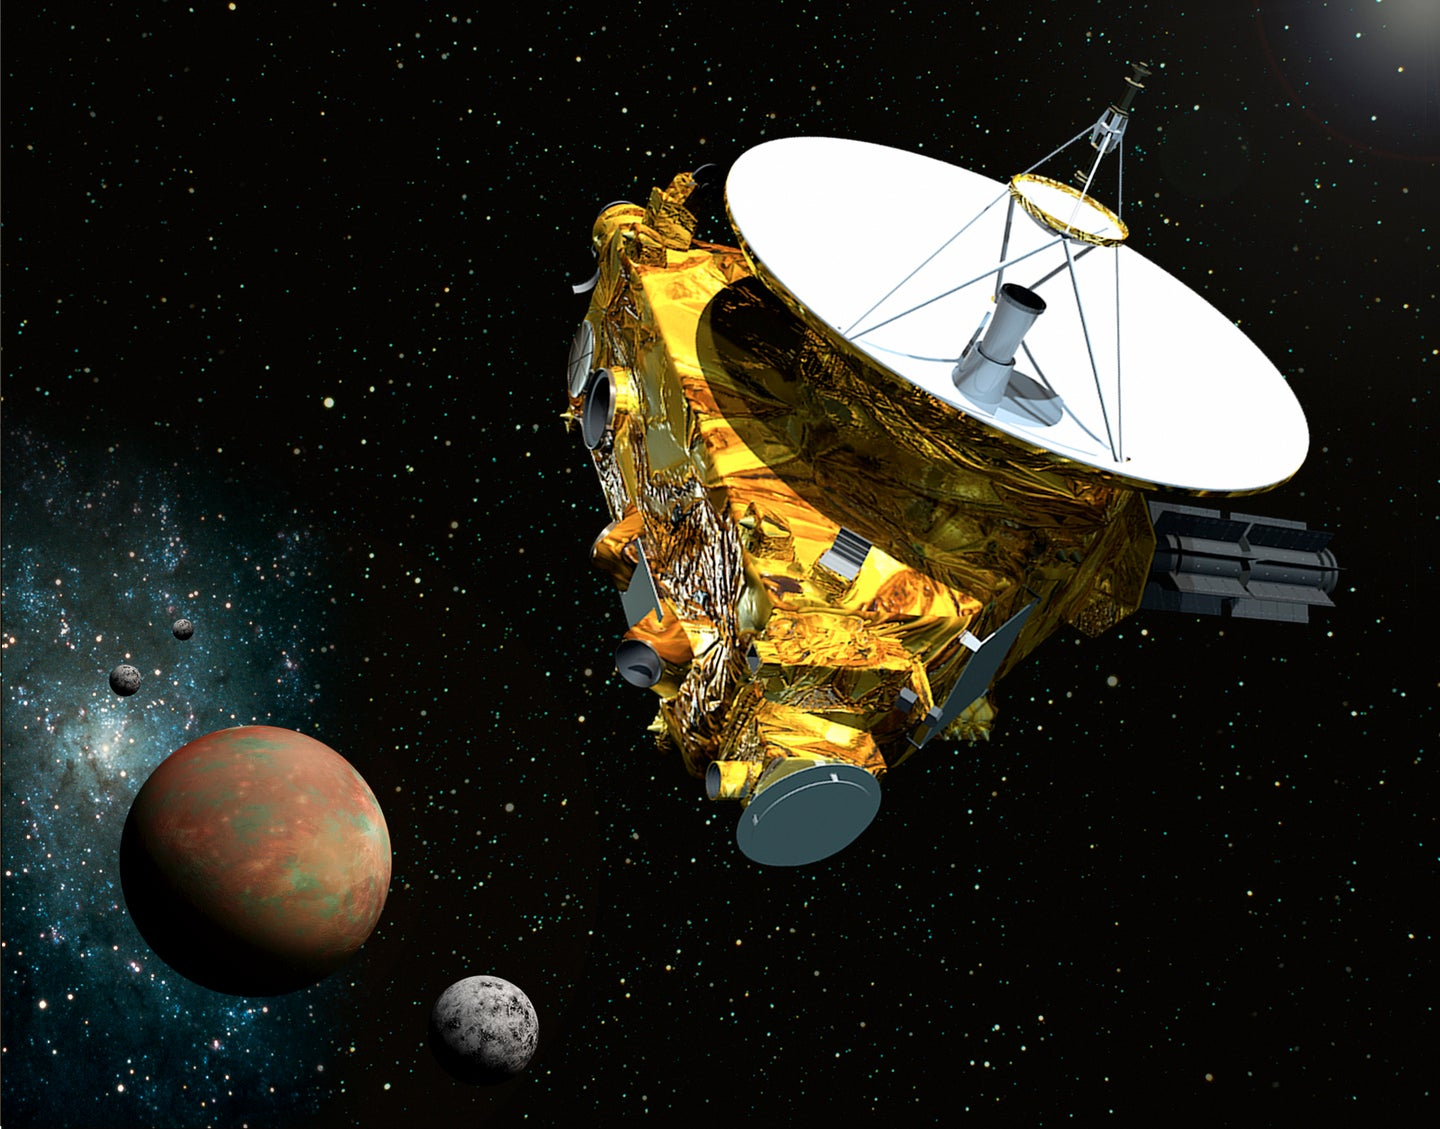 Coming In 2015: The First Spacecraft Encounter With Pluto